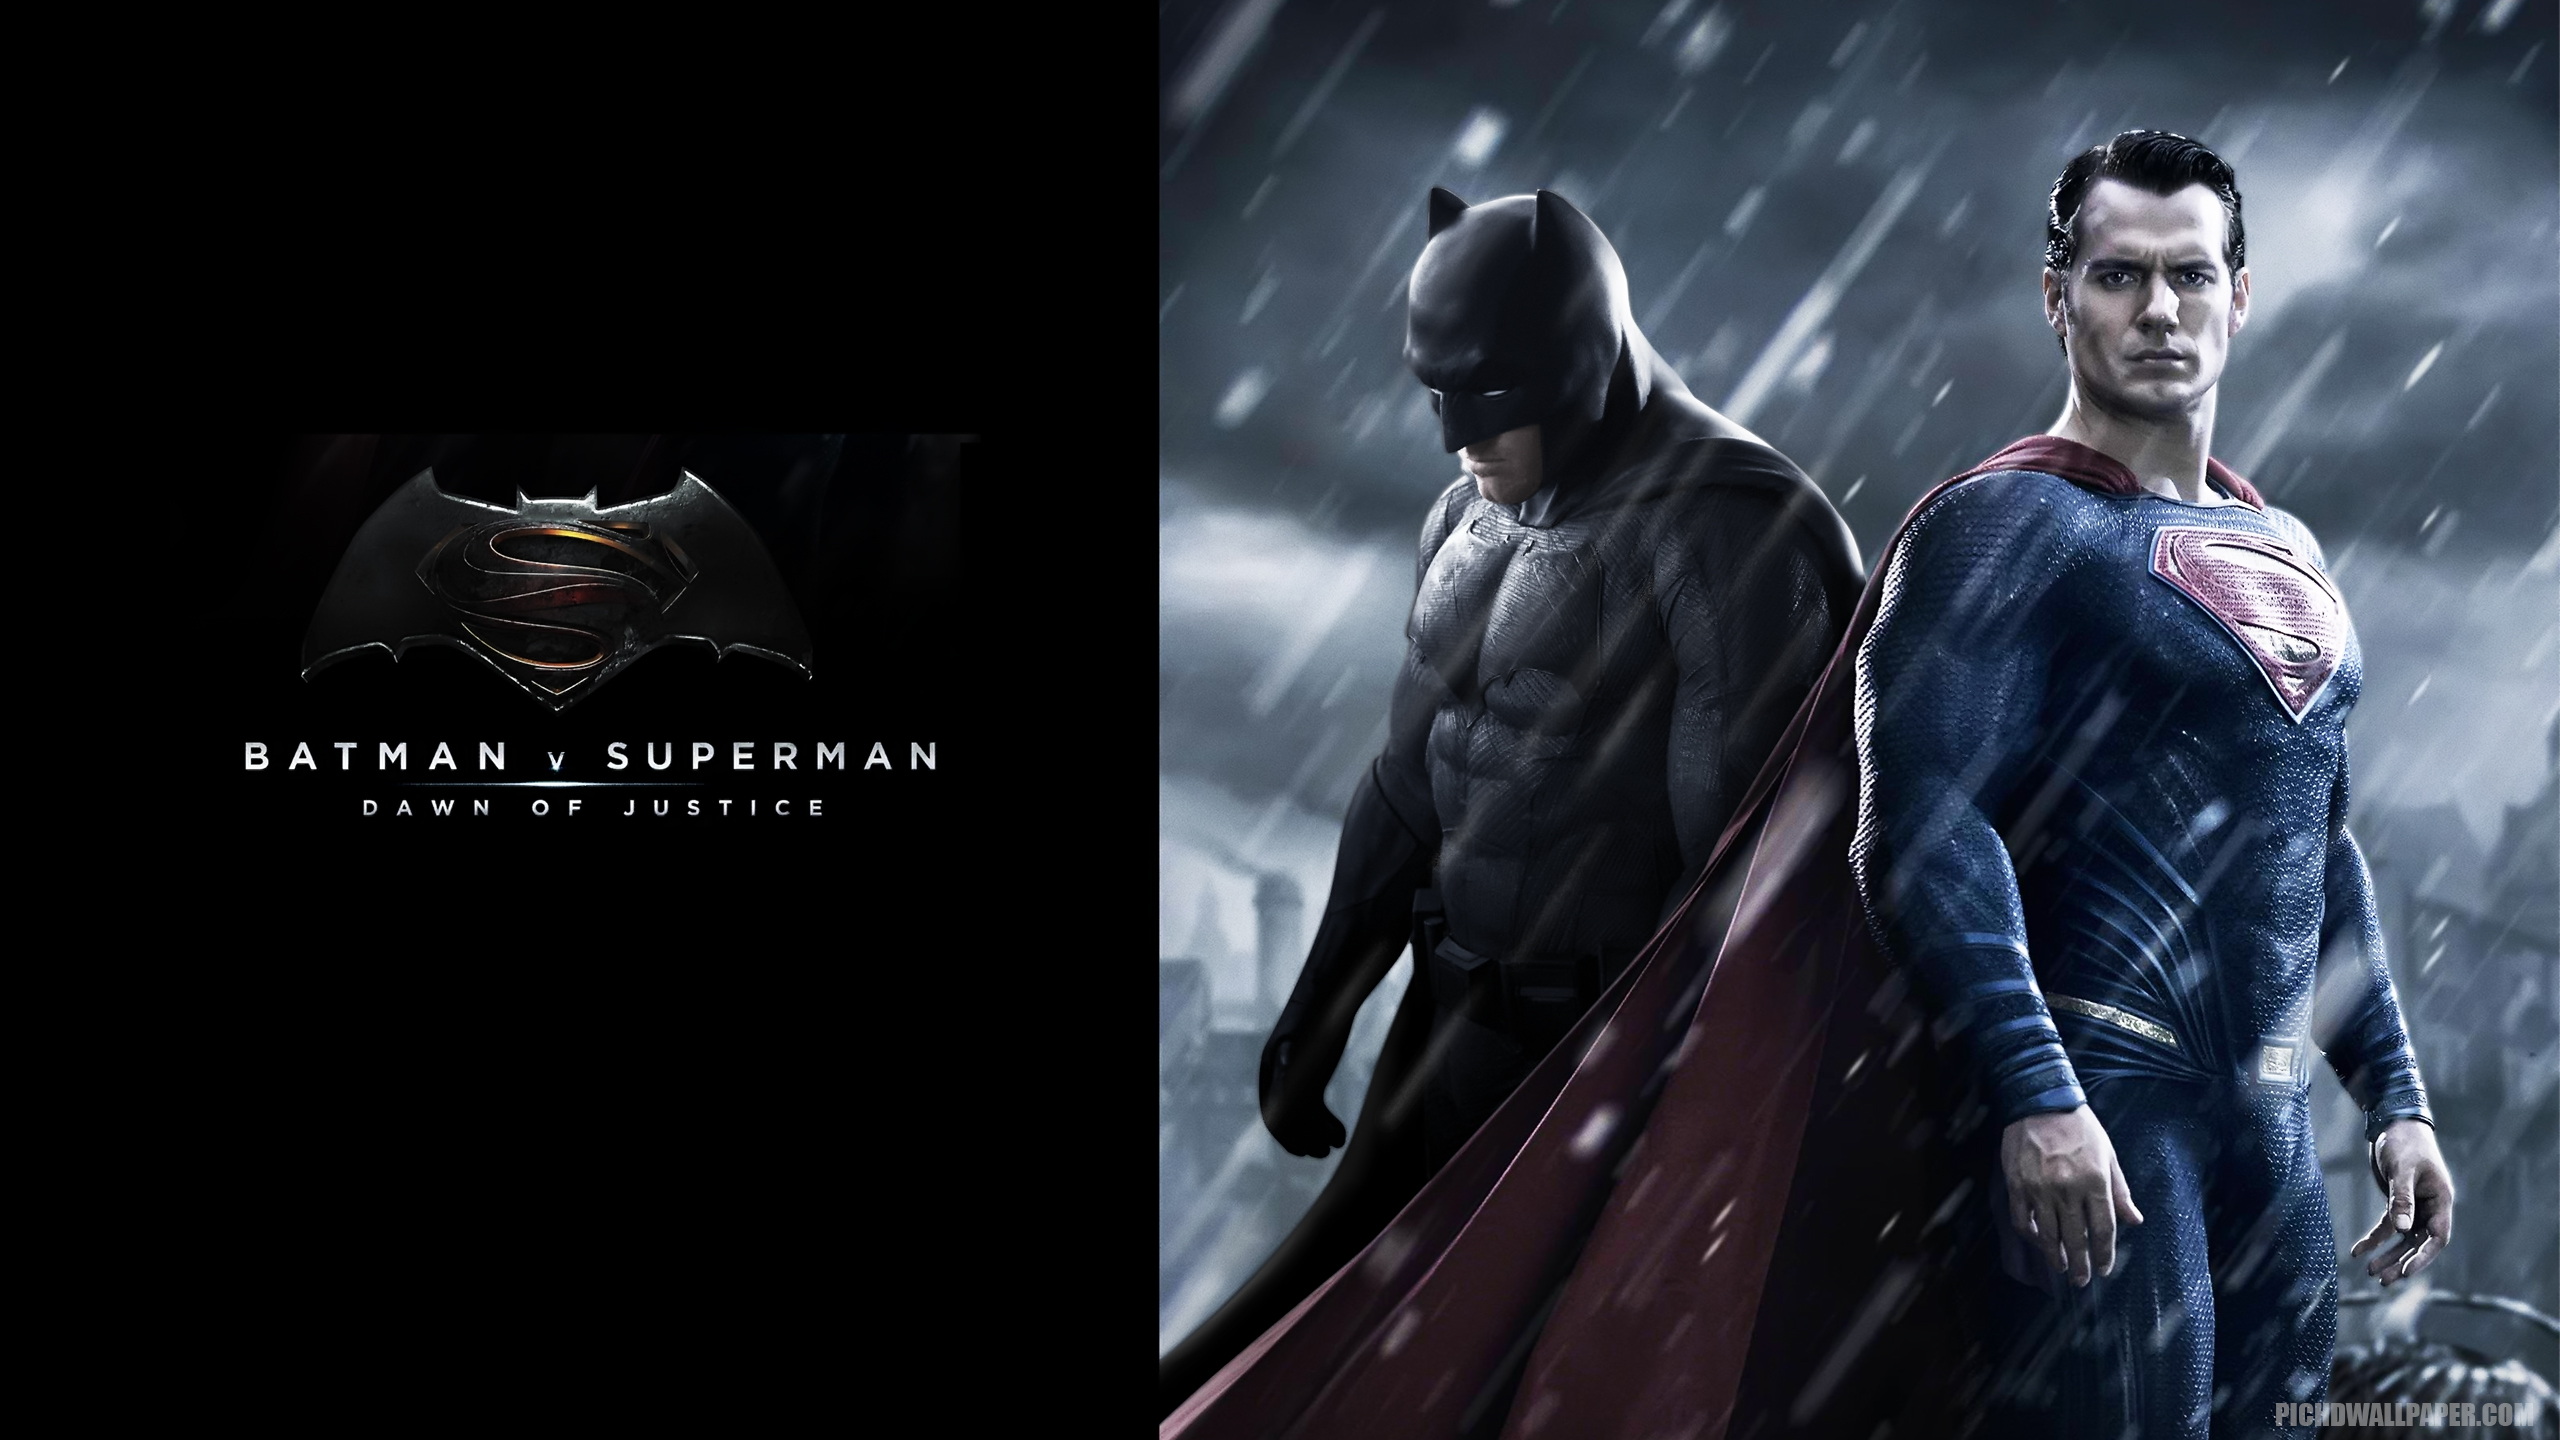 Batman vs Superman Dawn of Justice Desktop HD Wallpaper 2560x1440